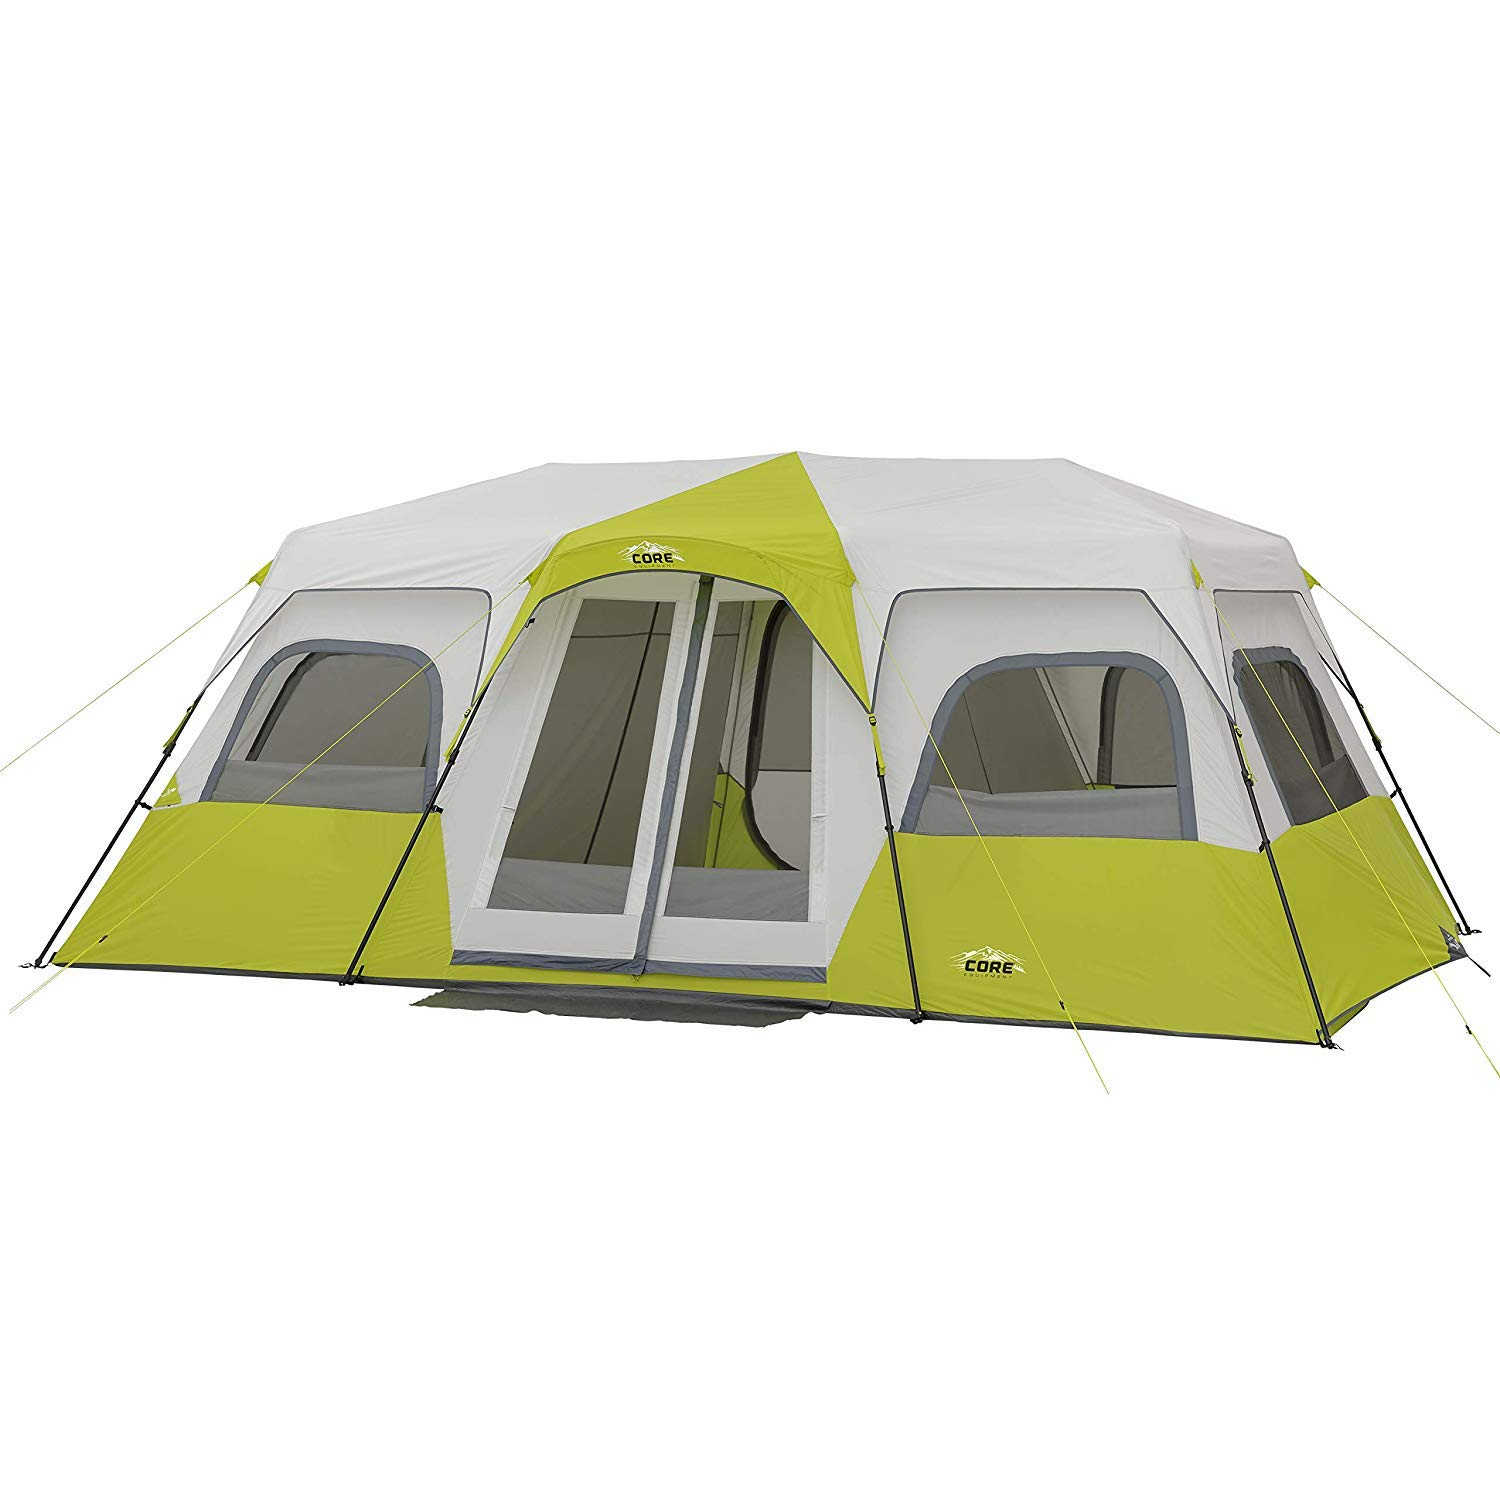 CORE 12 Person Instant Cabin Tent - 18' x 10' ...- Light by CORE